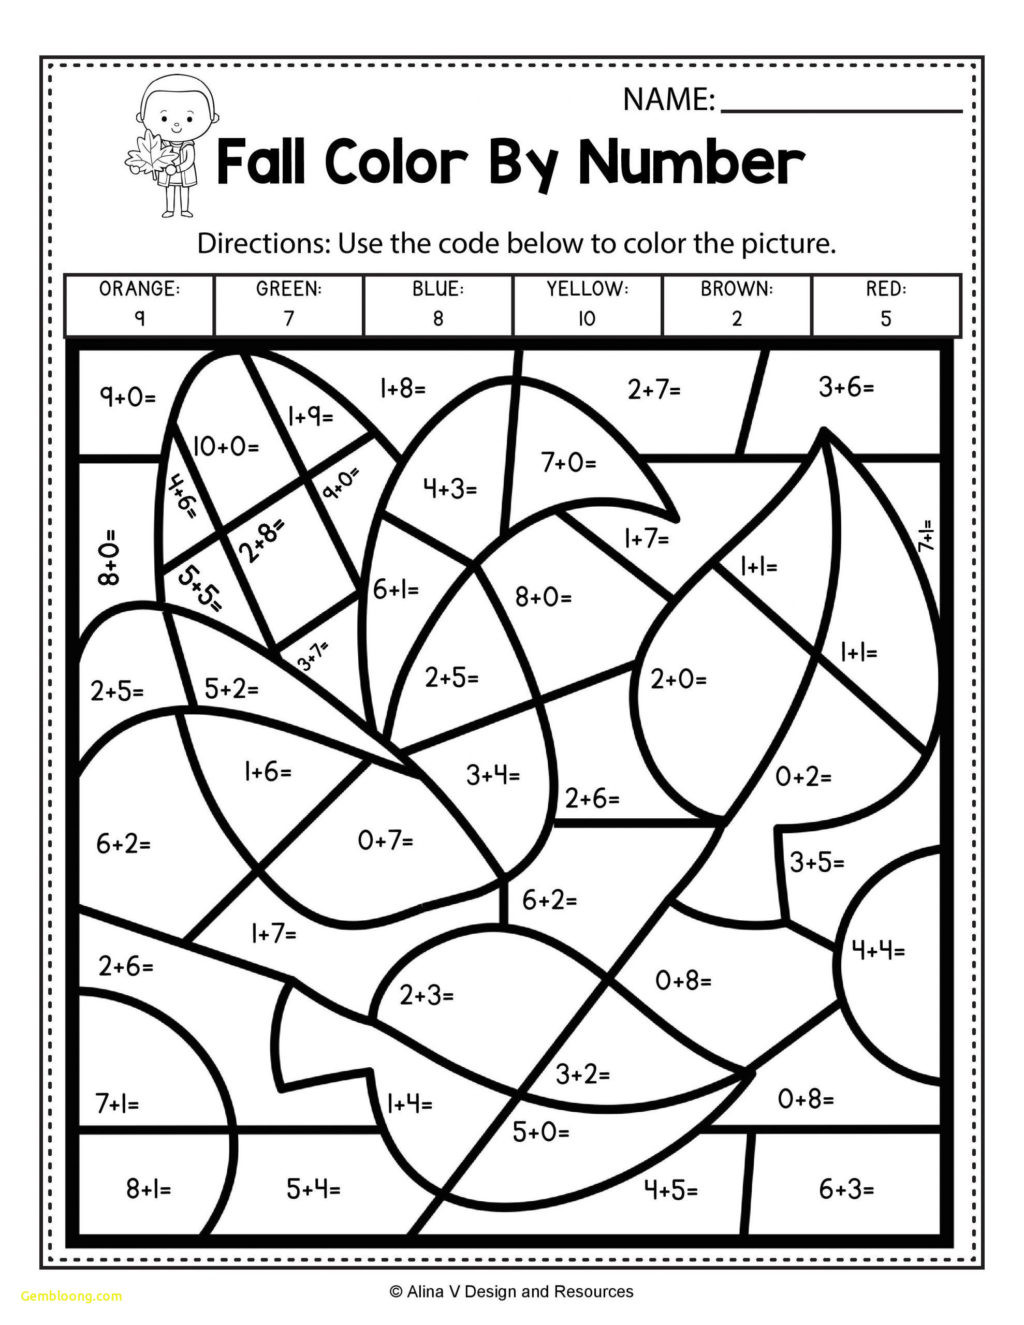 Division Coloring Worksheets 3rd Grade Freetiplication Coloring Worksheets Pdf Printable and